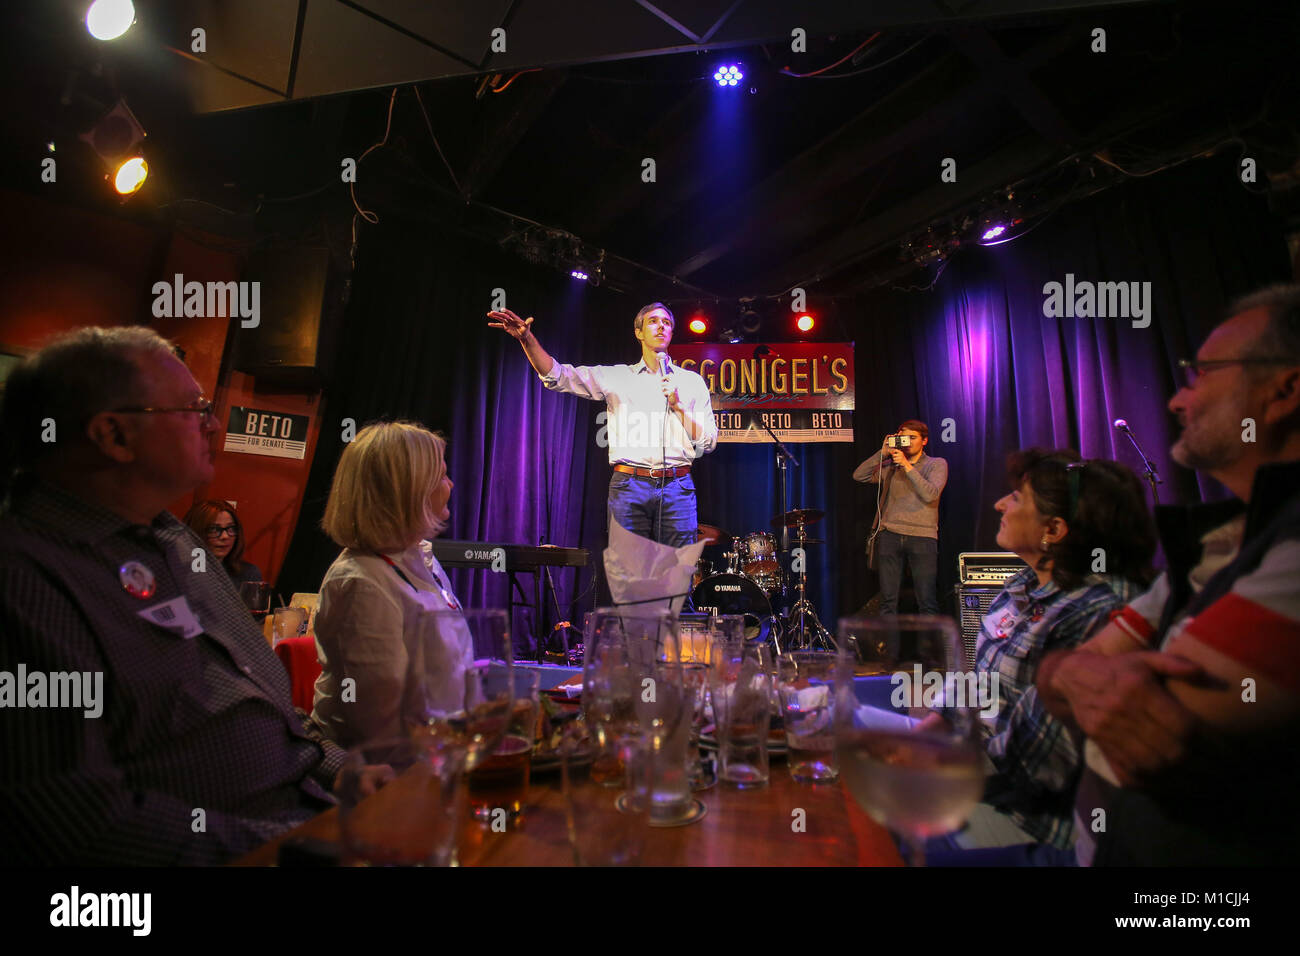 Houston, Texas, USA. 28th January, 2018. Beto O'Rourke, D-Texas speaks at a Bands for Beto event at the Mucky Duck Stock Photo